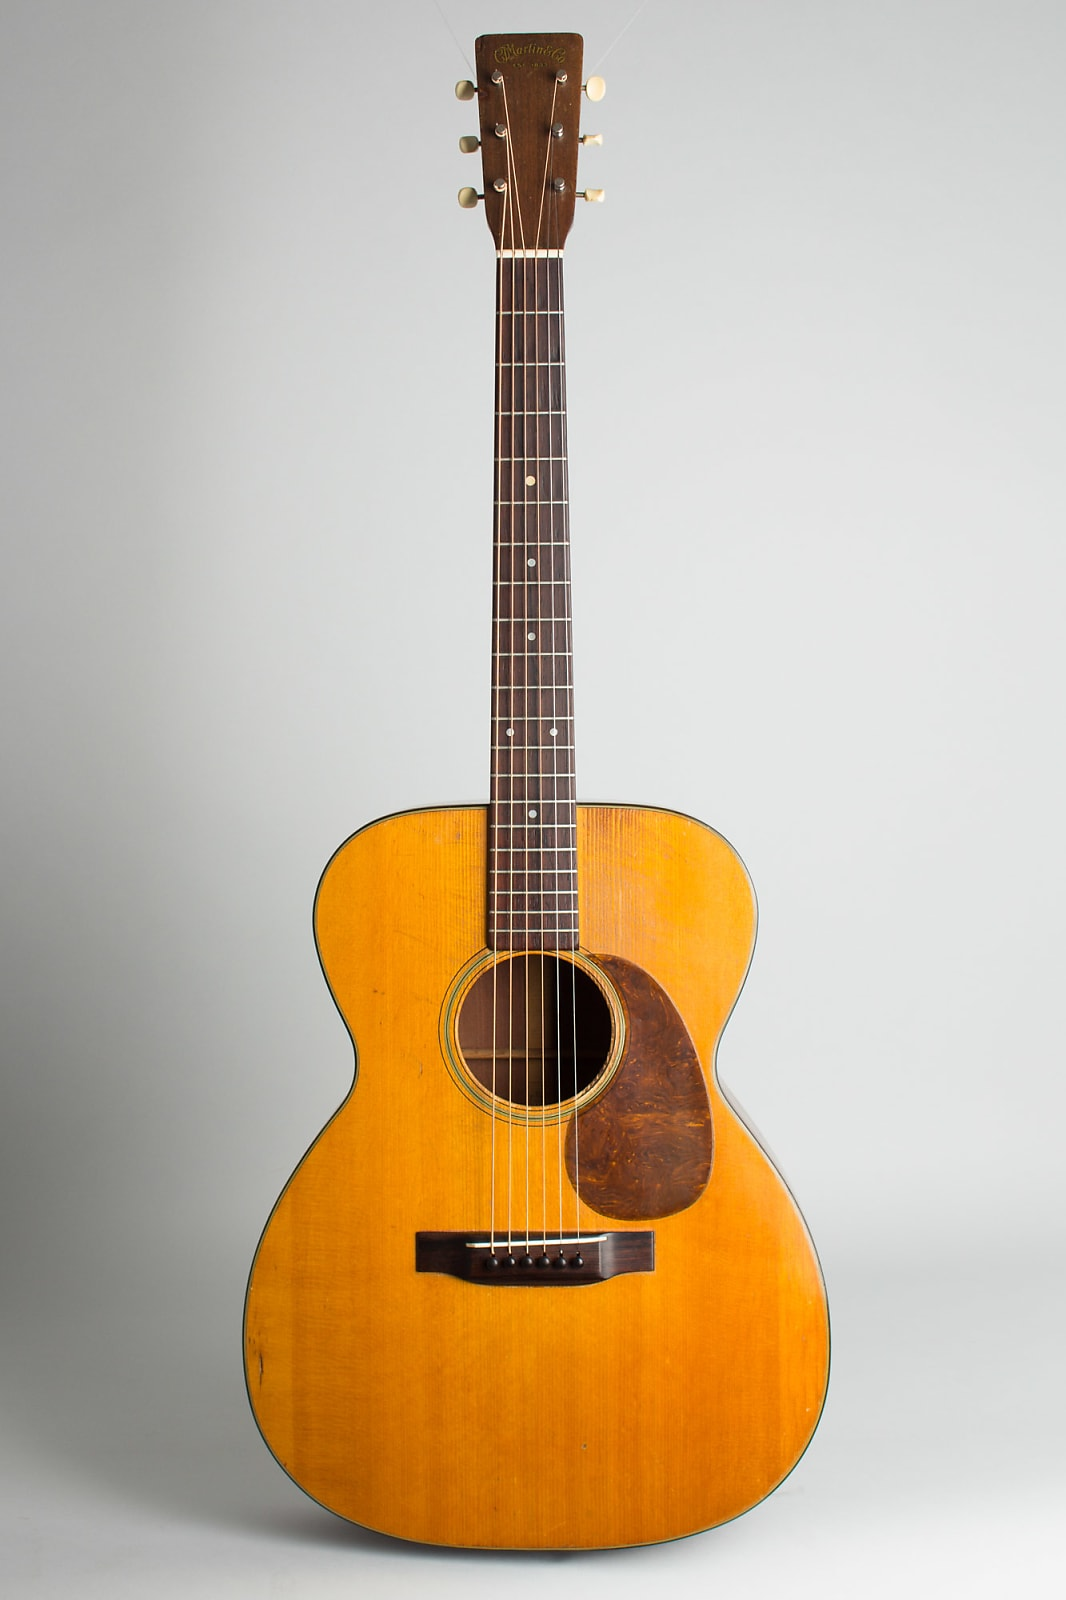 C. F. Martin  000-18 Flat Top Acoustic Guitar (1945), ser. #90306, original black hard shell case.